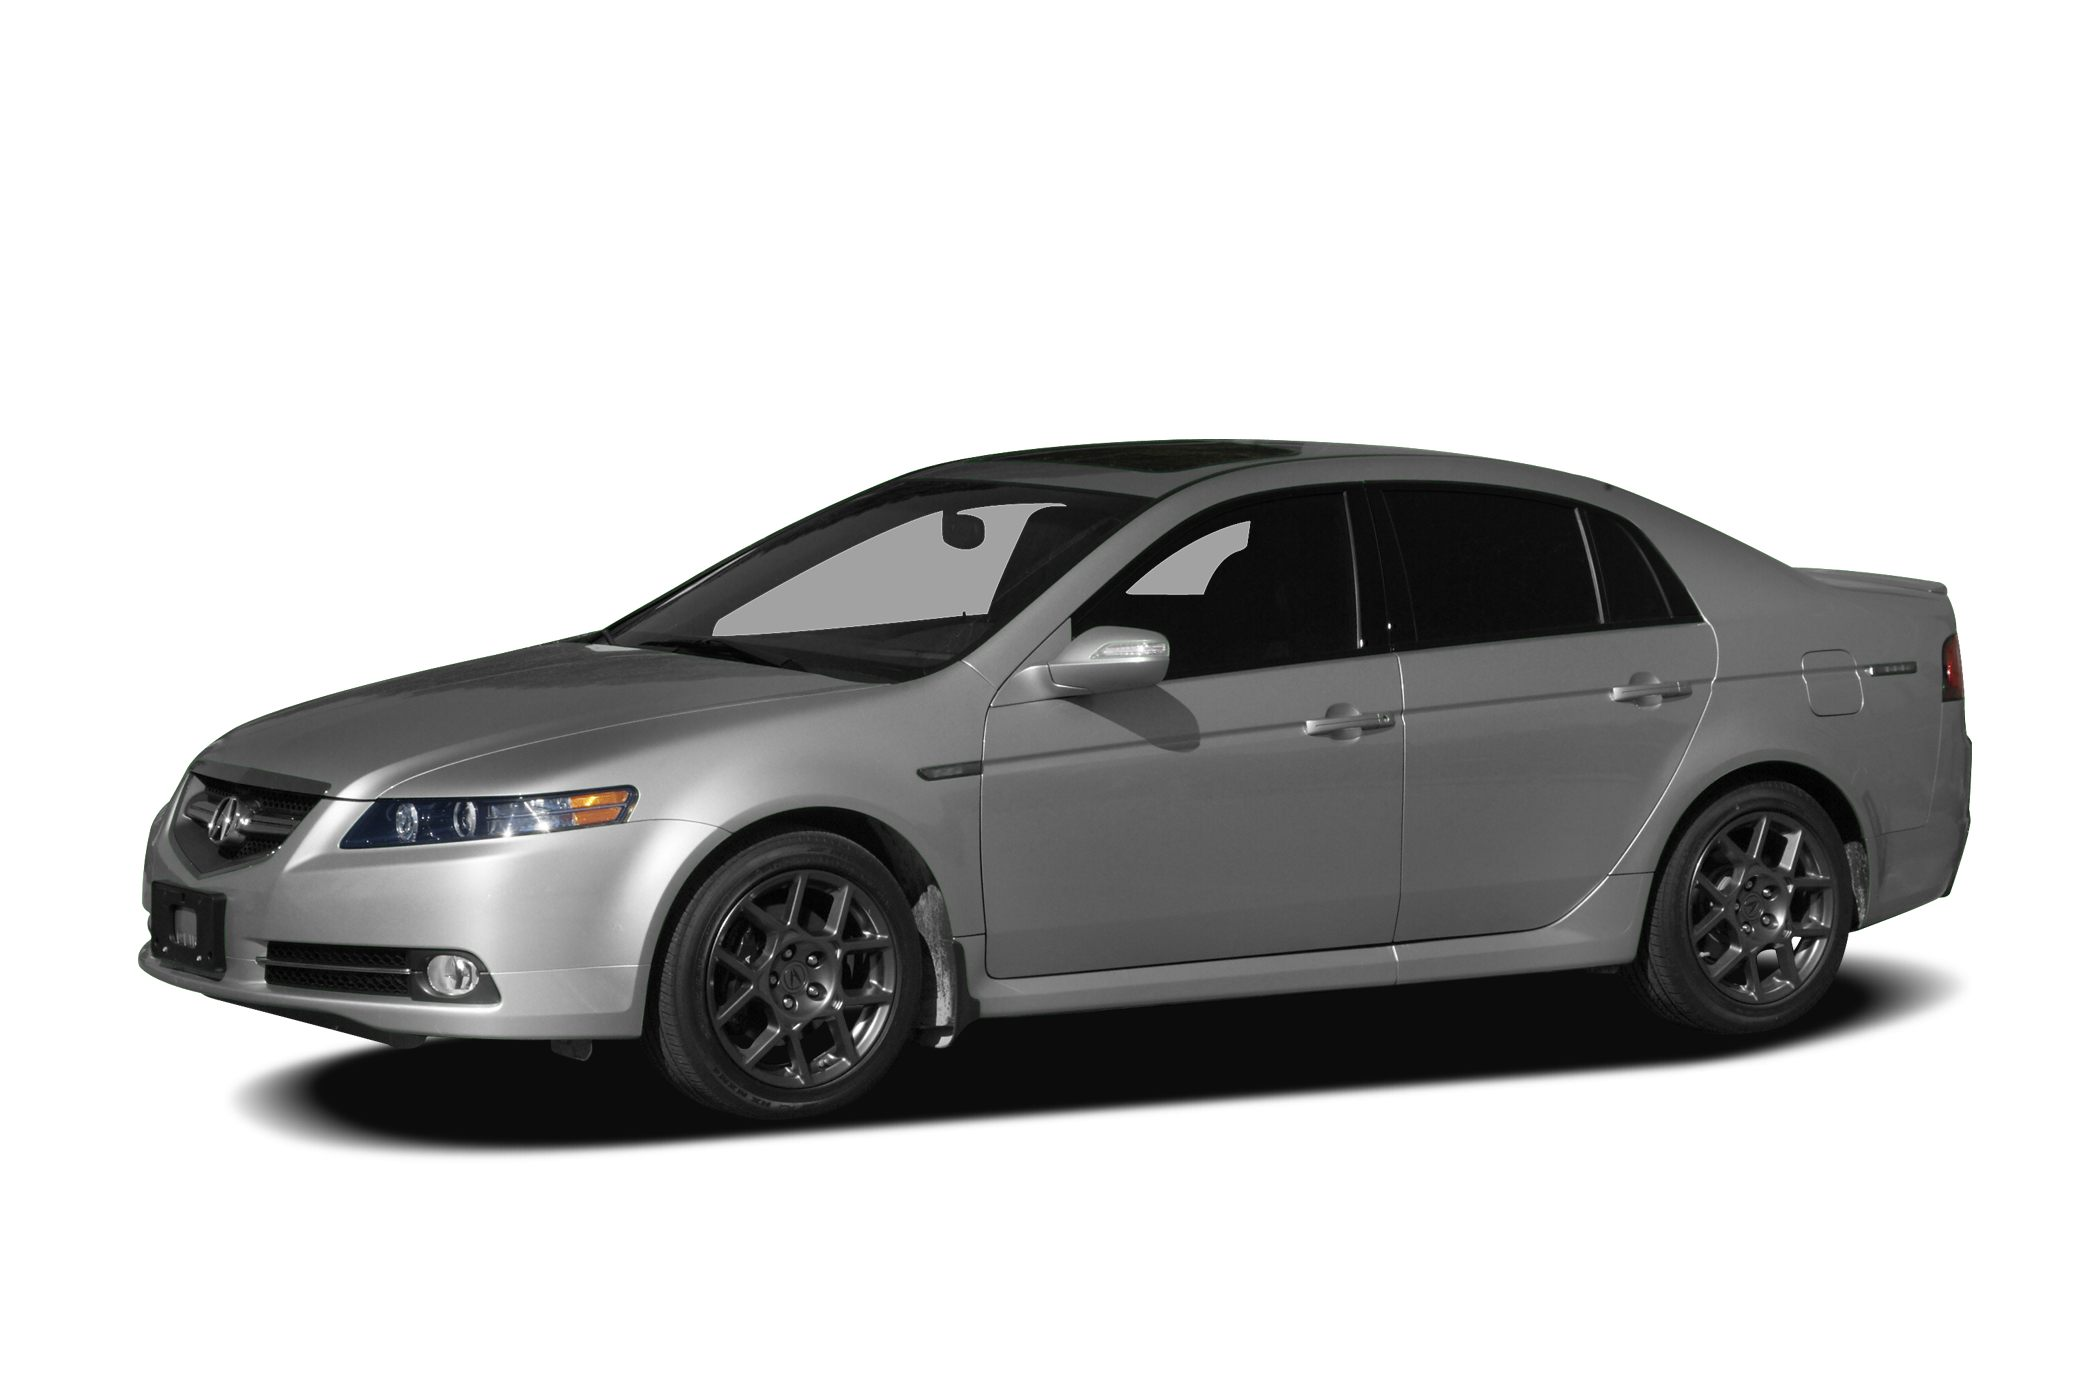 2008 Acura TL 32 AutoMax Pre-owned is a BBB Accredited Business with an A Rating We offer facto